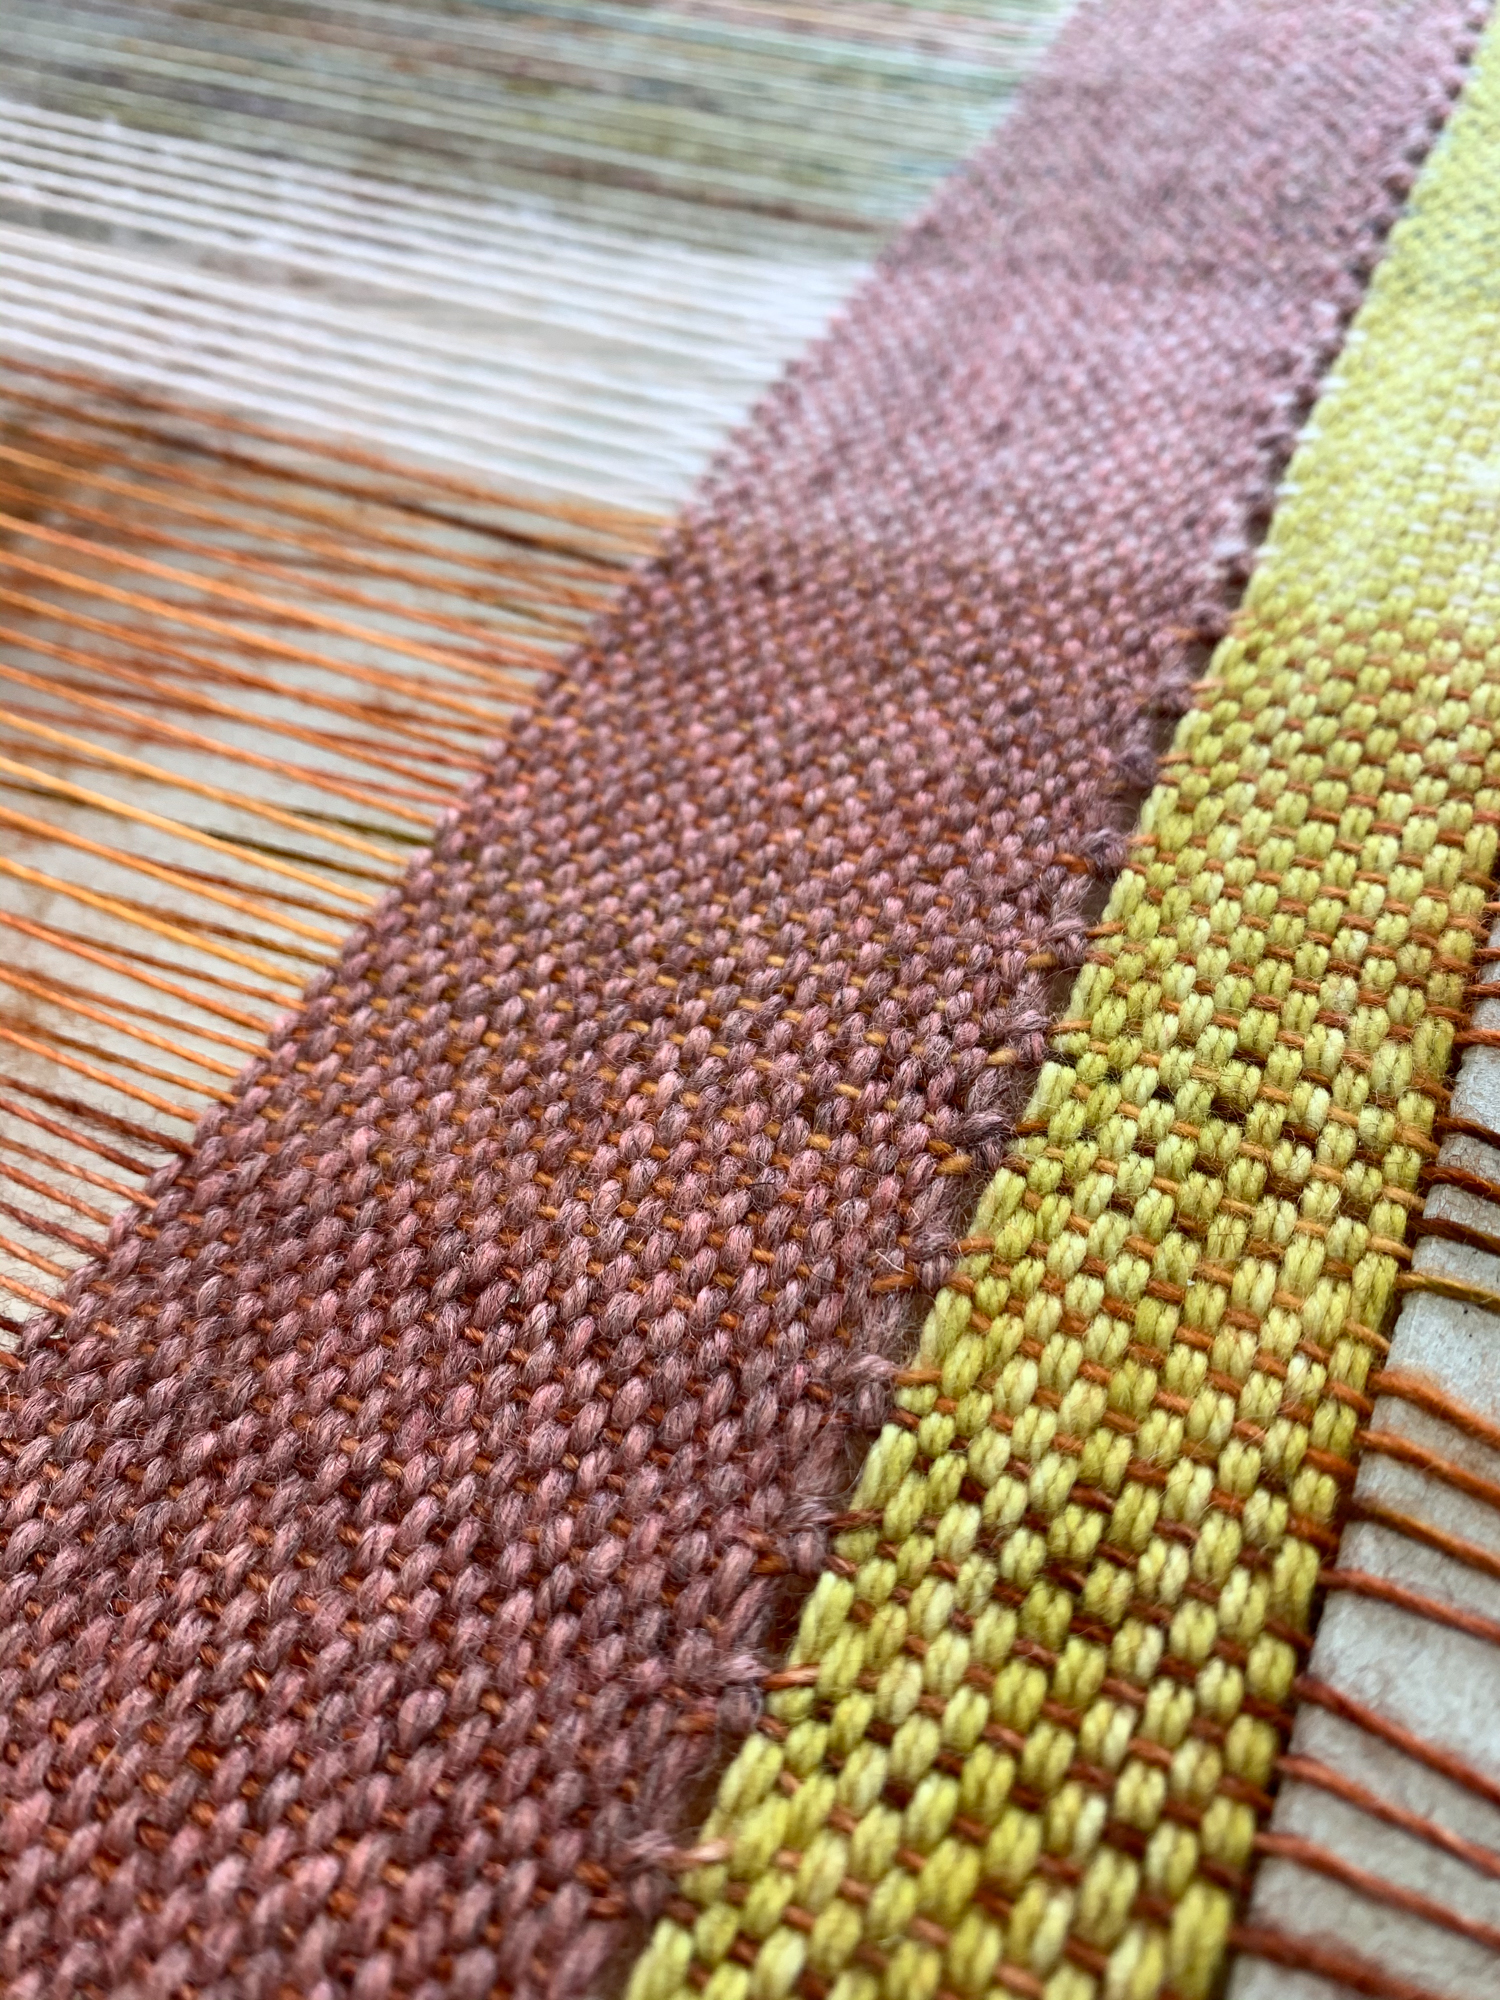 Header and end stitch on weaving